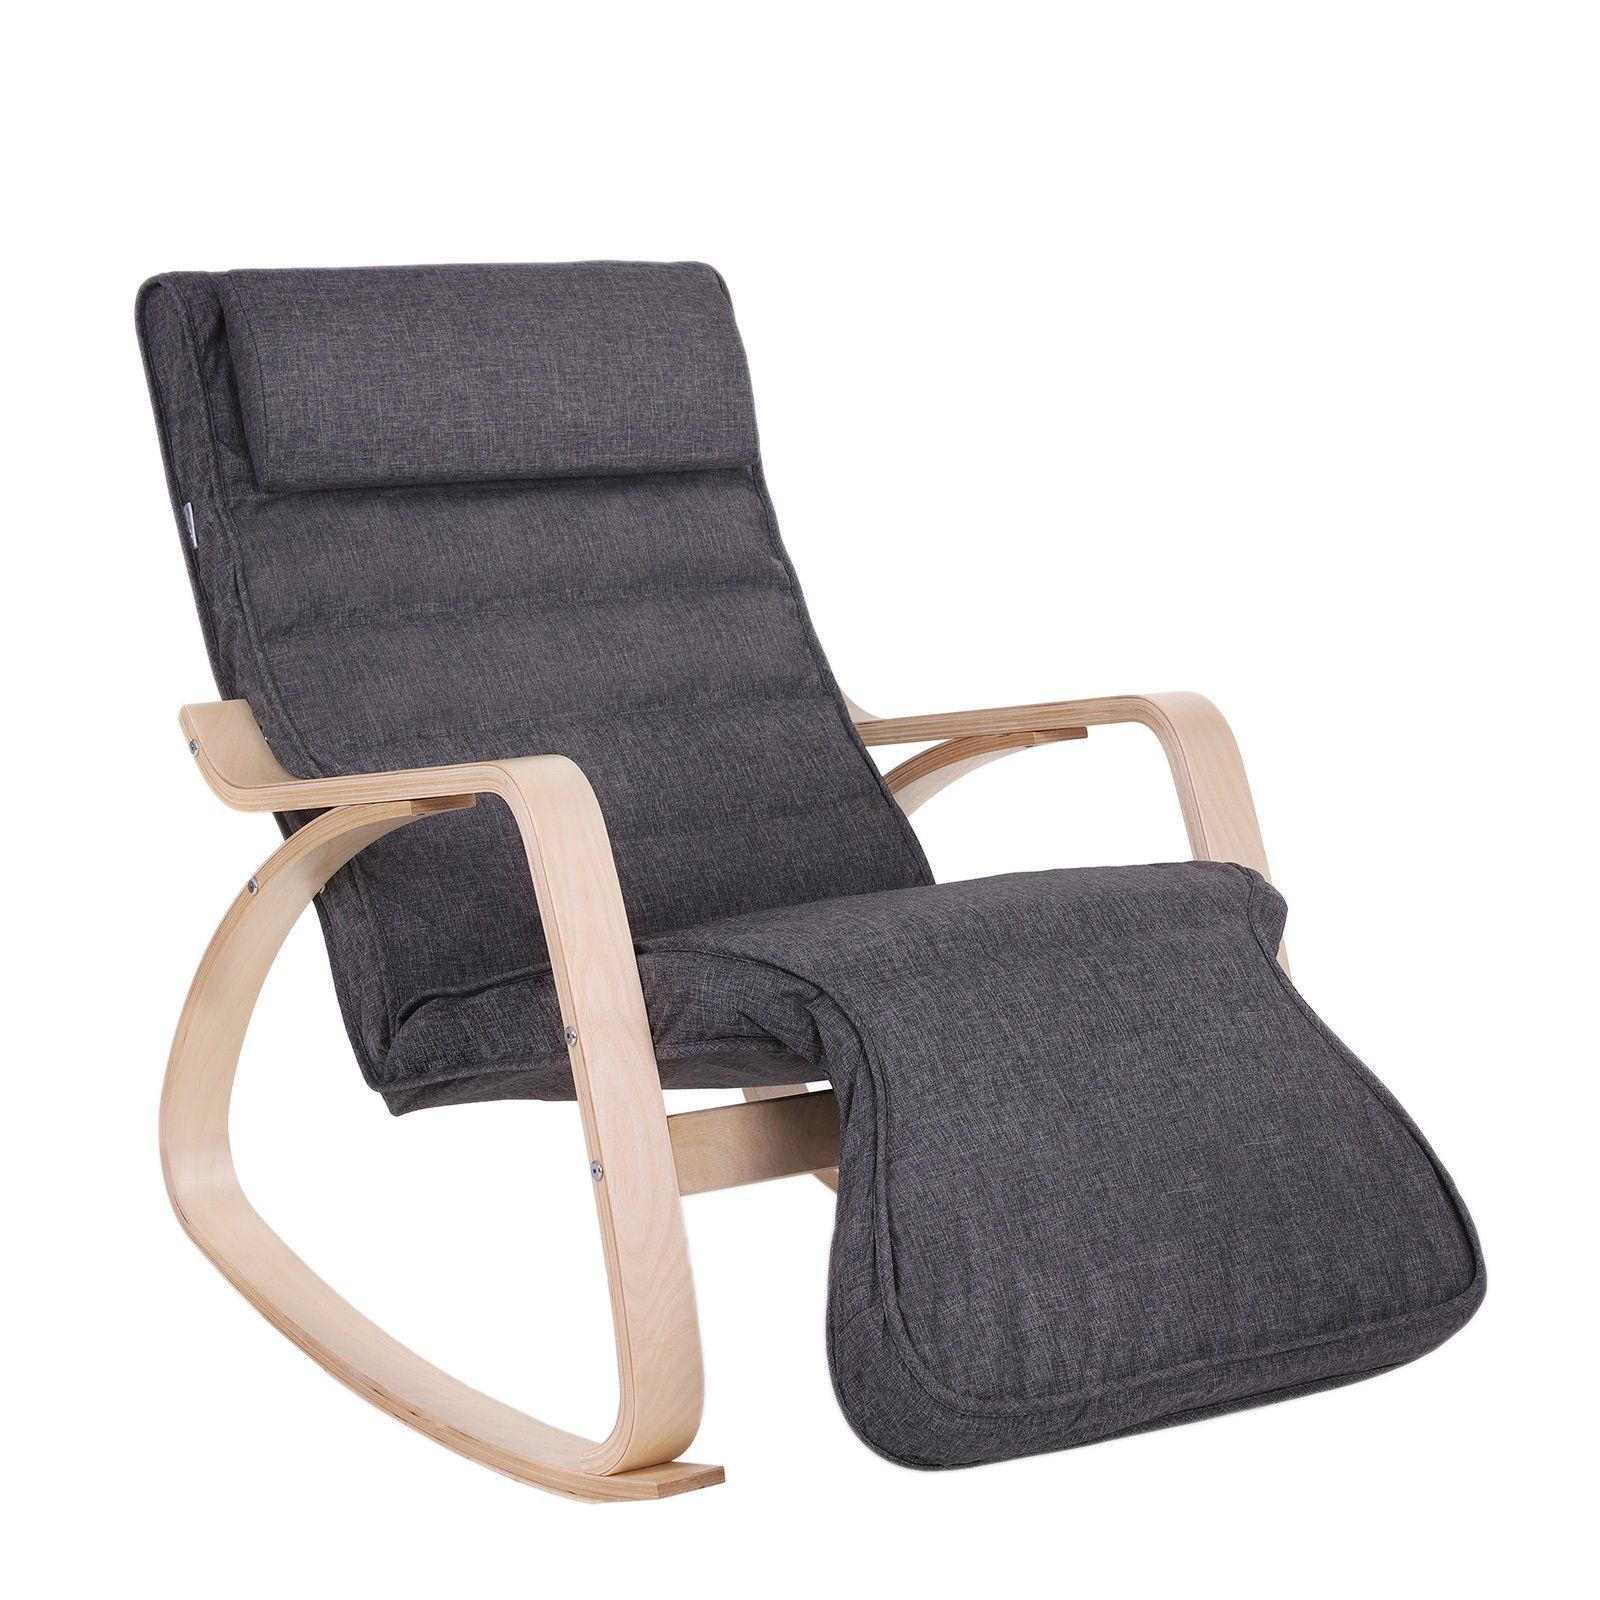 Songmics Rocking Lounge Chair/recliners/gliders With 5Way Pertaining To Rocking Chairs & Lounge Chairs In Grey (View 18 of 20)